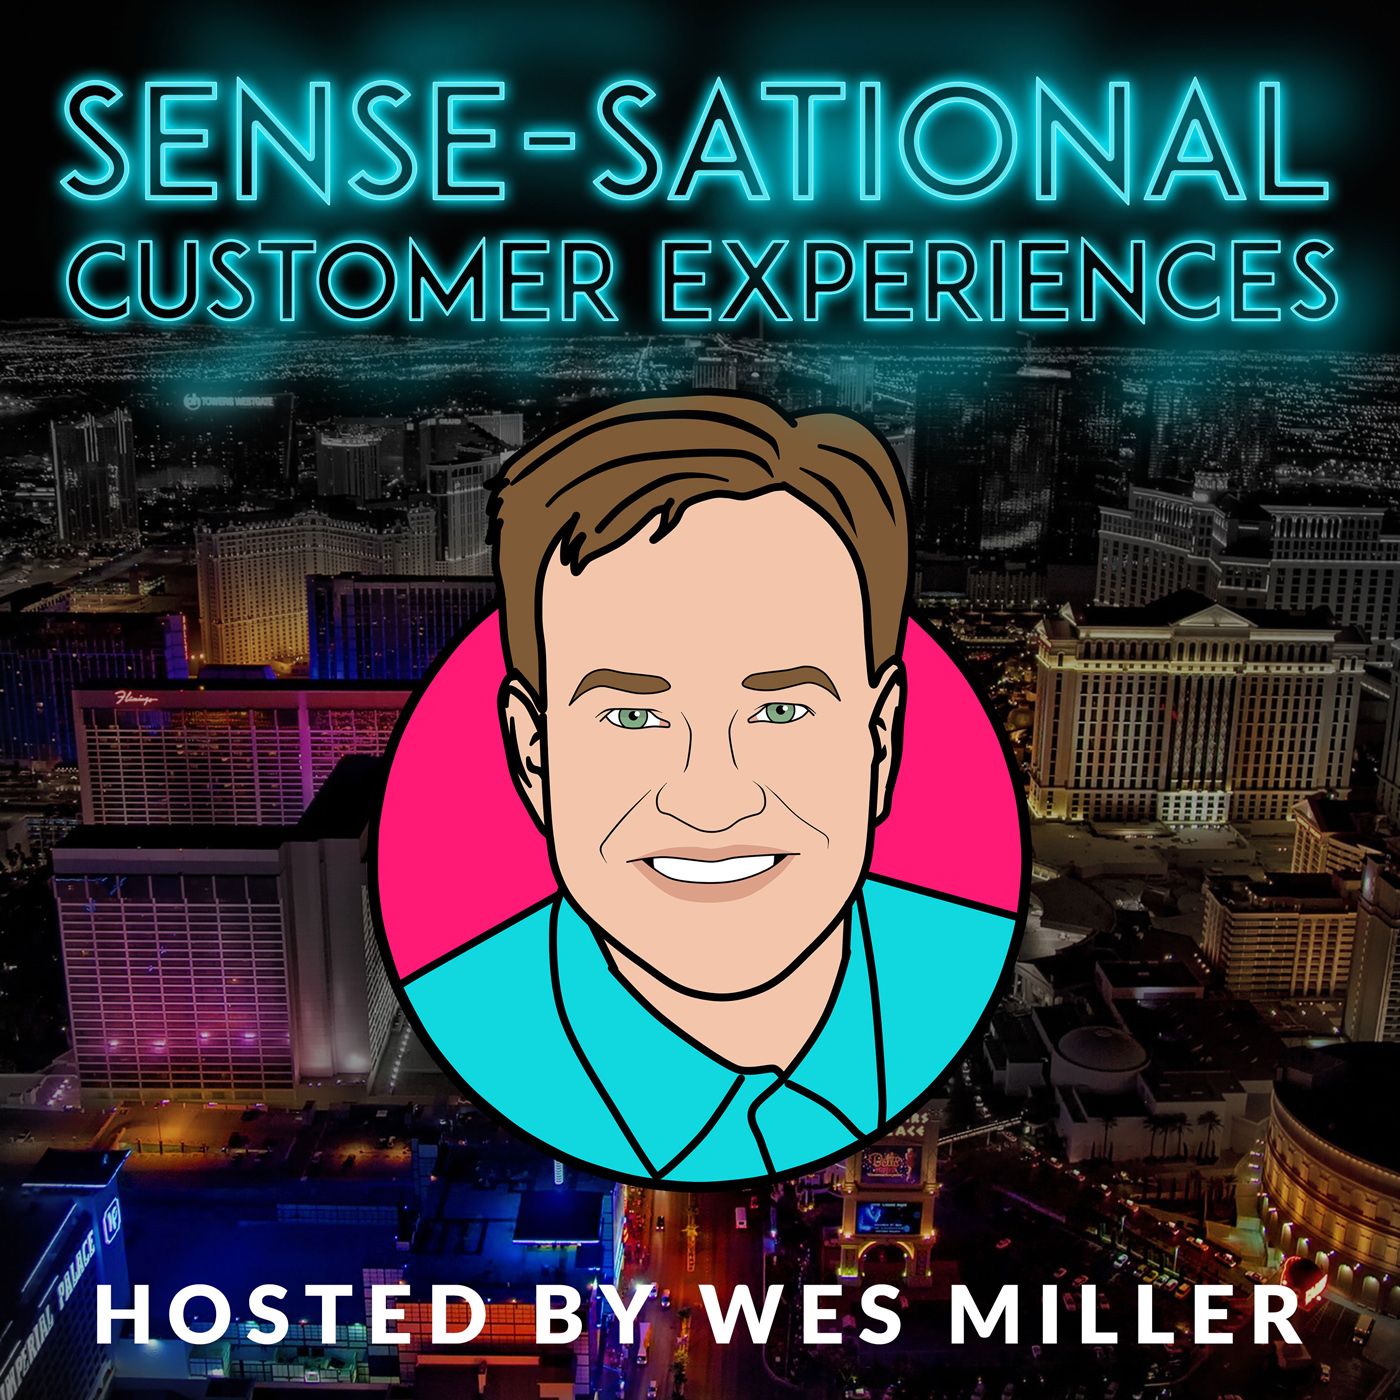 The Sense-sational Customer Experiences Podcast